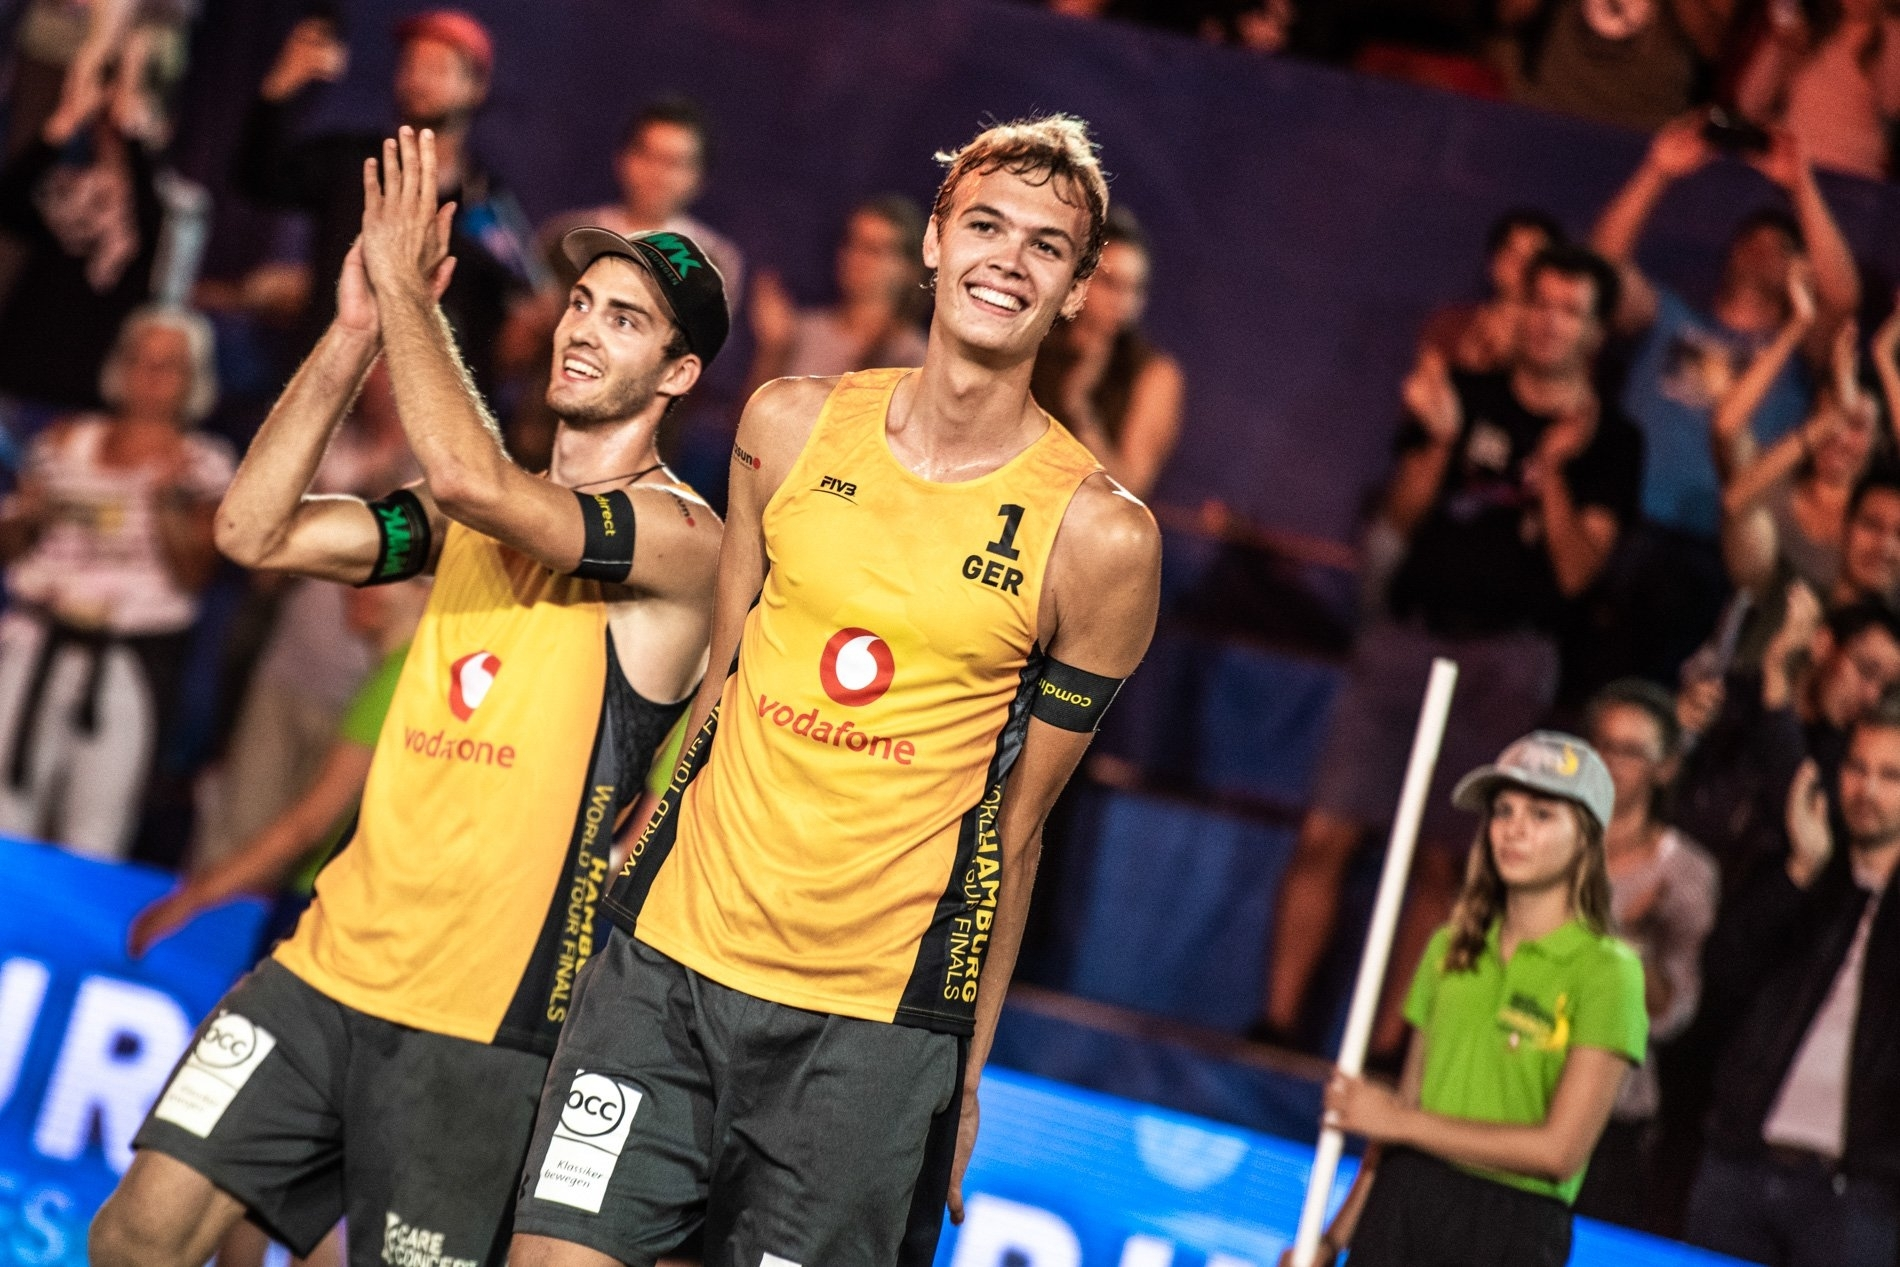 Clemens Wickler (left) and Julius Thole won their first game of the tournament inside the Red Bull Beach Arena